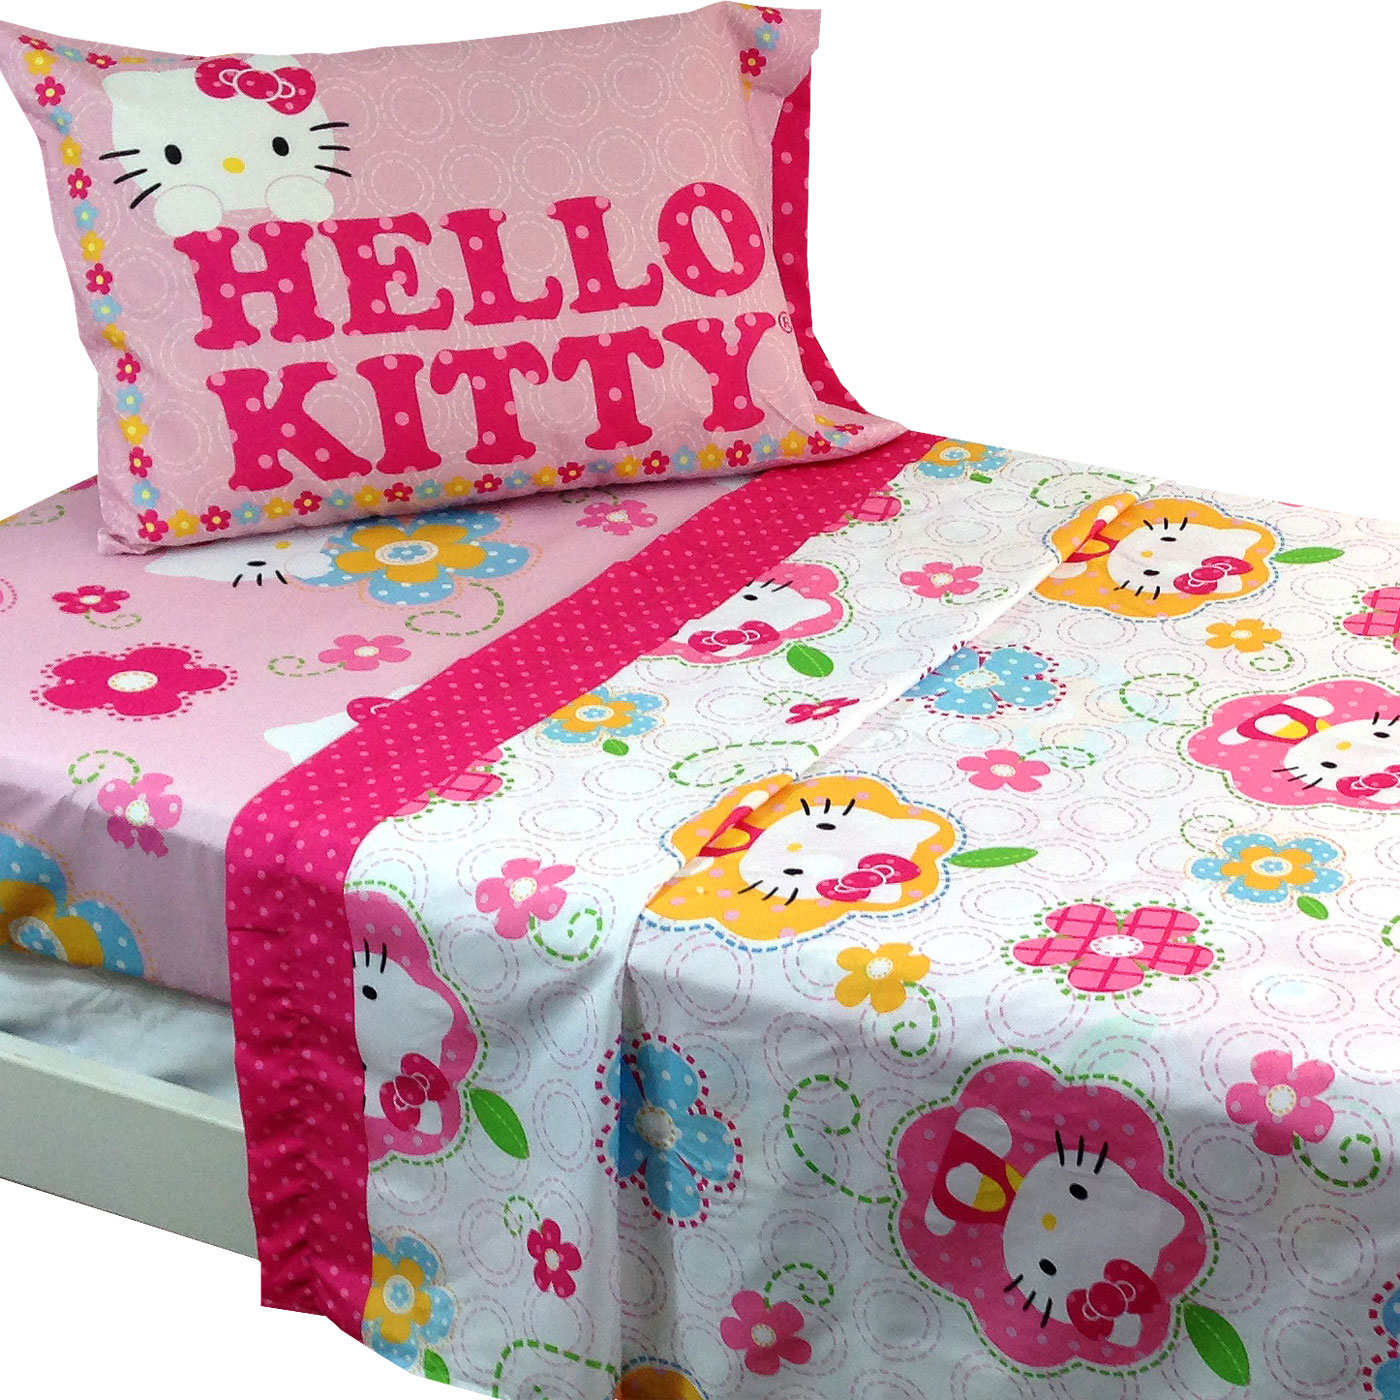 Sanrio Hello Kitty Twin Bed Sheet Set